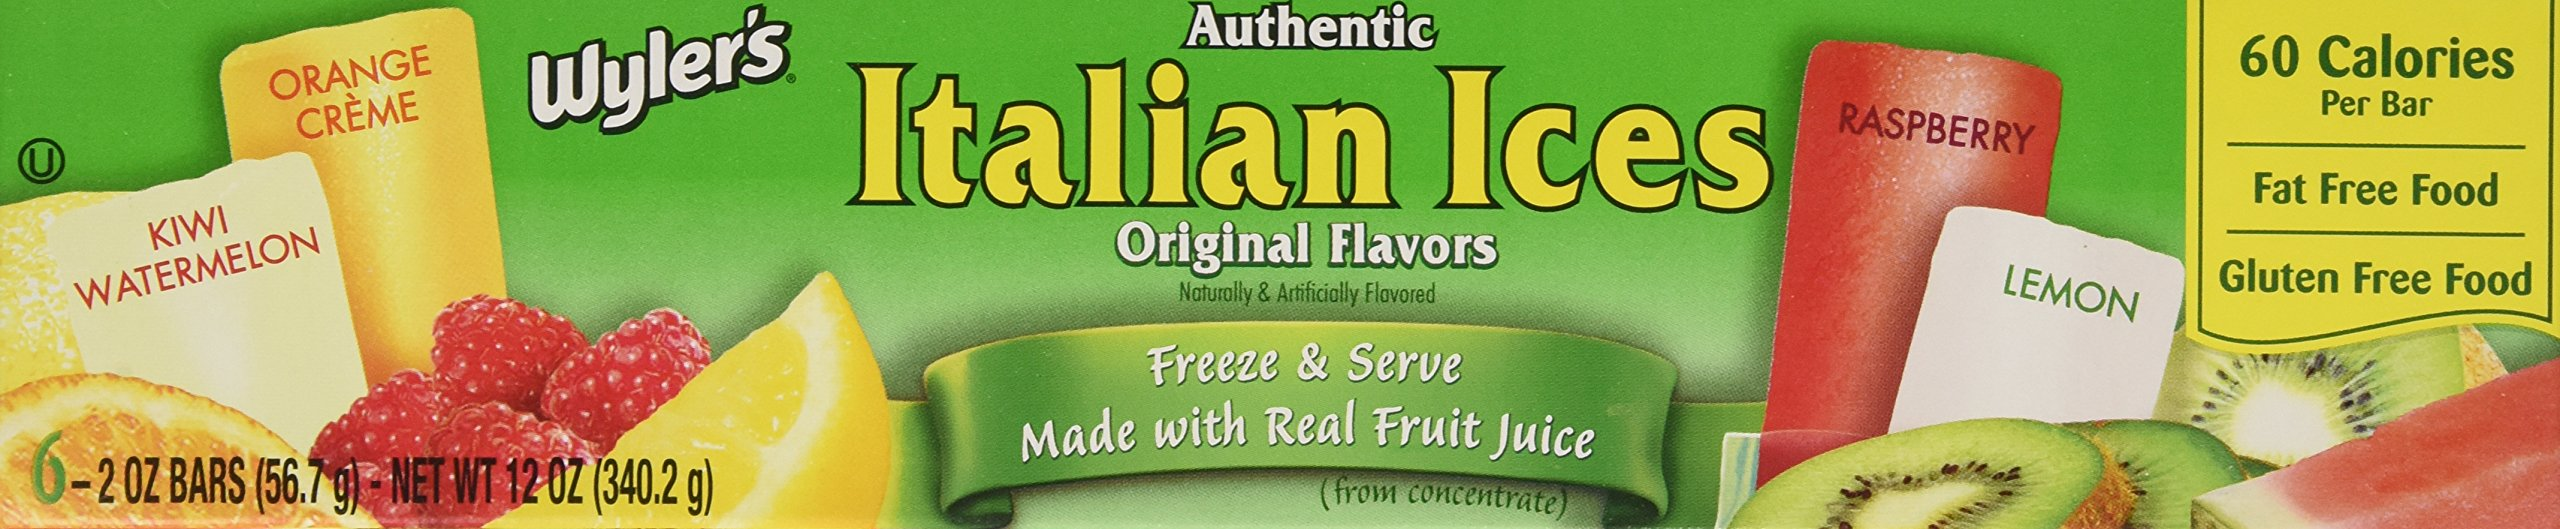 Wyler's Authentic Italian Ice Freezer Bars, 6-Count (Pack of 4) by Wyler's (Image #4)